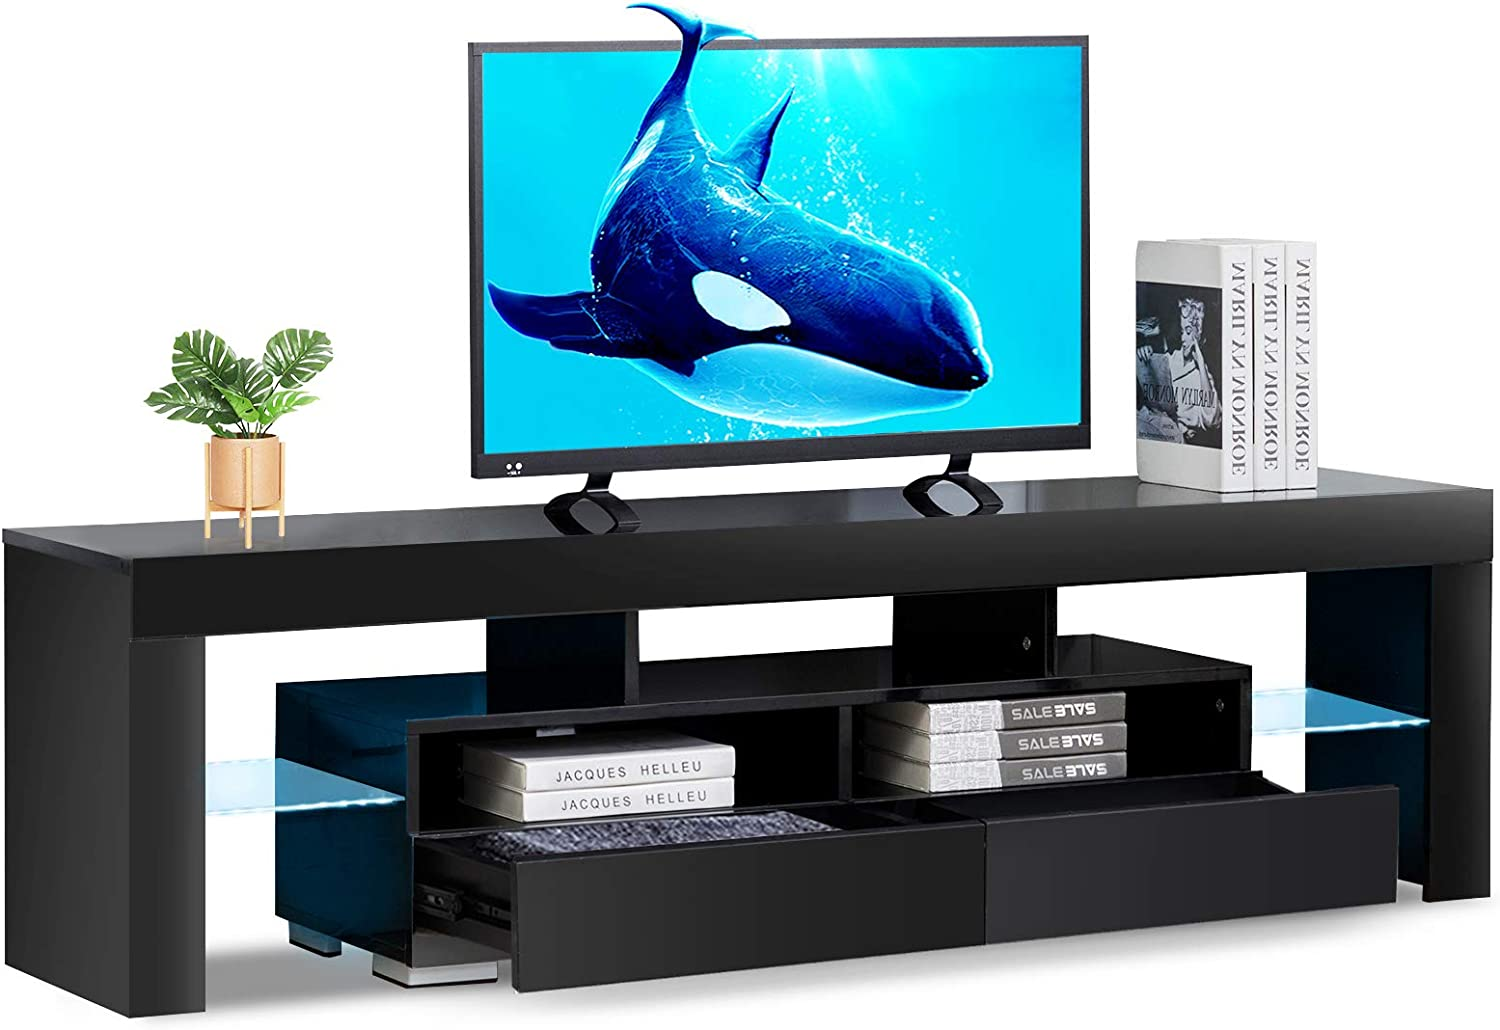 Bonzy Home Glossy LED TV Stand, Black TV Stand with LED RGB Lights, Wood Media Storage Console for 65 Inch TV, Flat Screen TV Cabinet, Gaming Consoles - in Lounge Room, Living Room and Bedroom (Black)